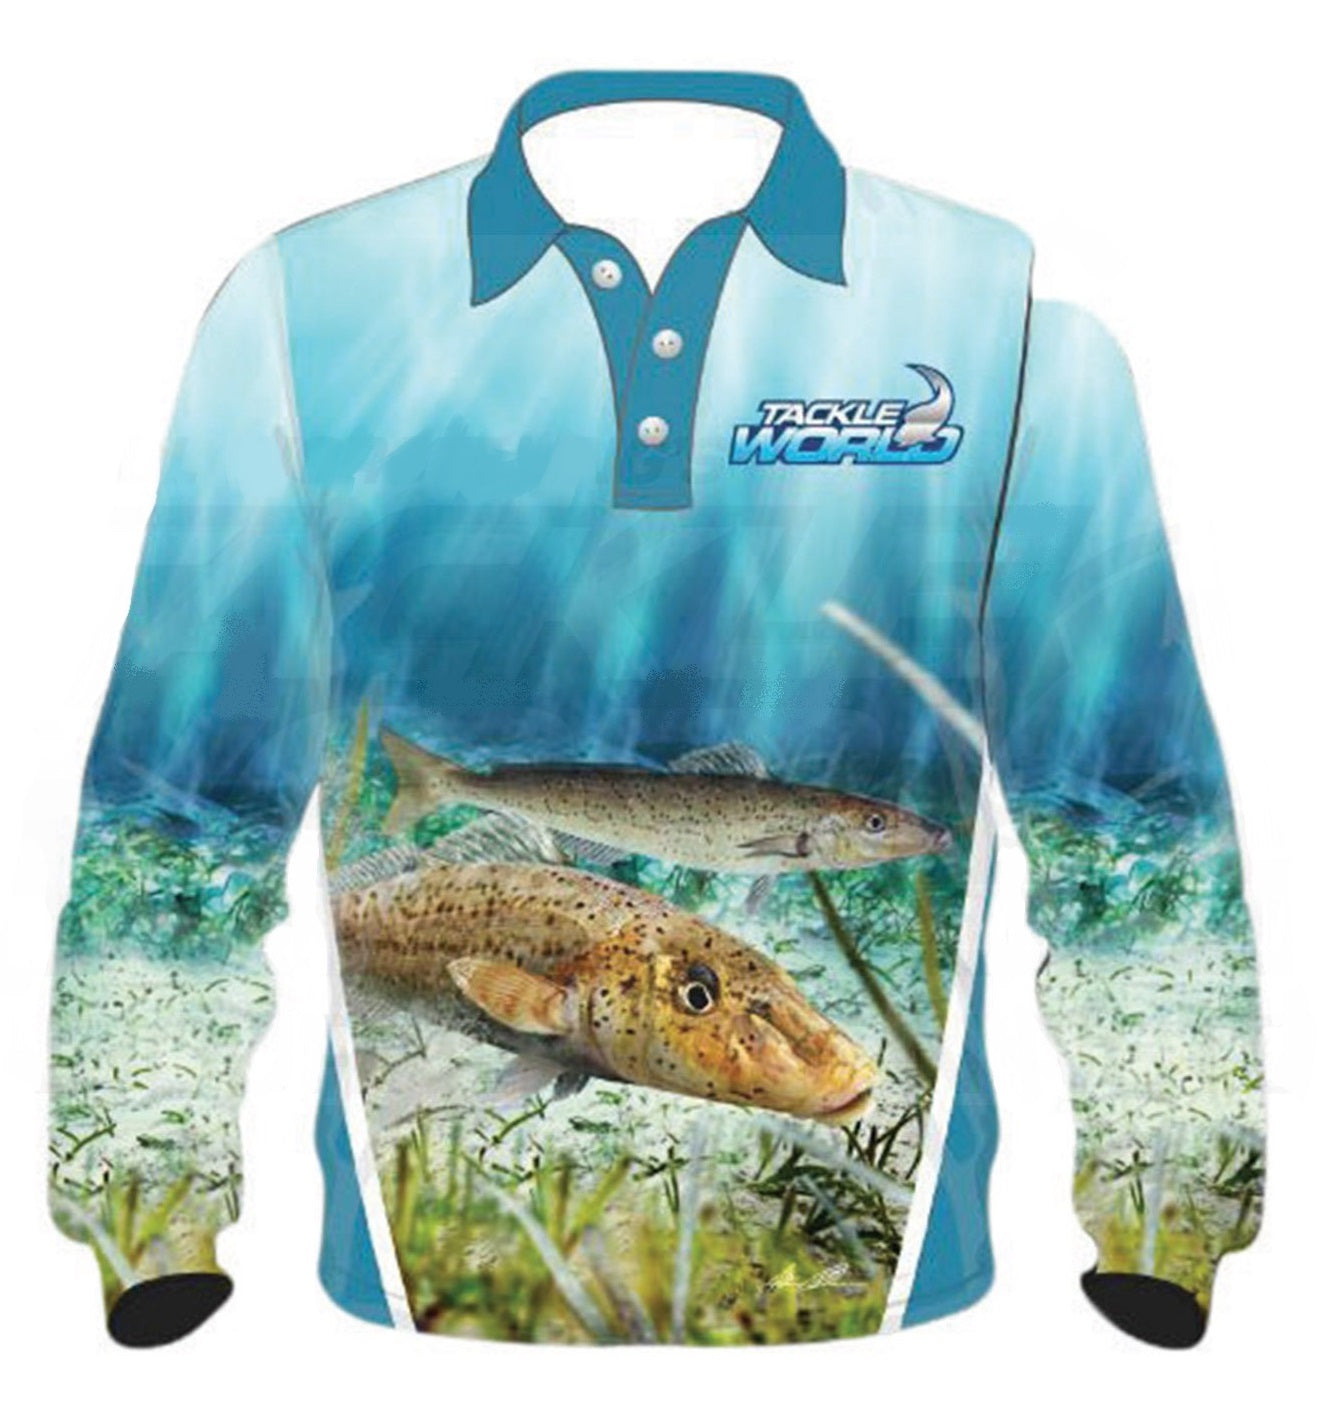 Tackle World Whiting Girls Long Sleeve Fishing Shirt Jersey